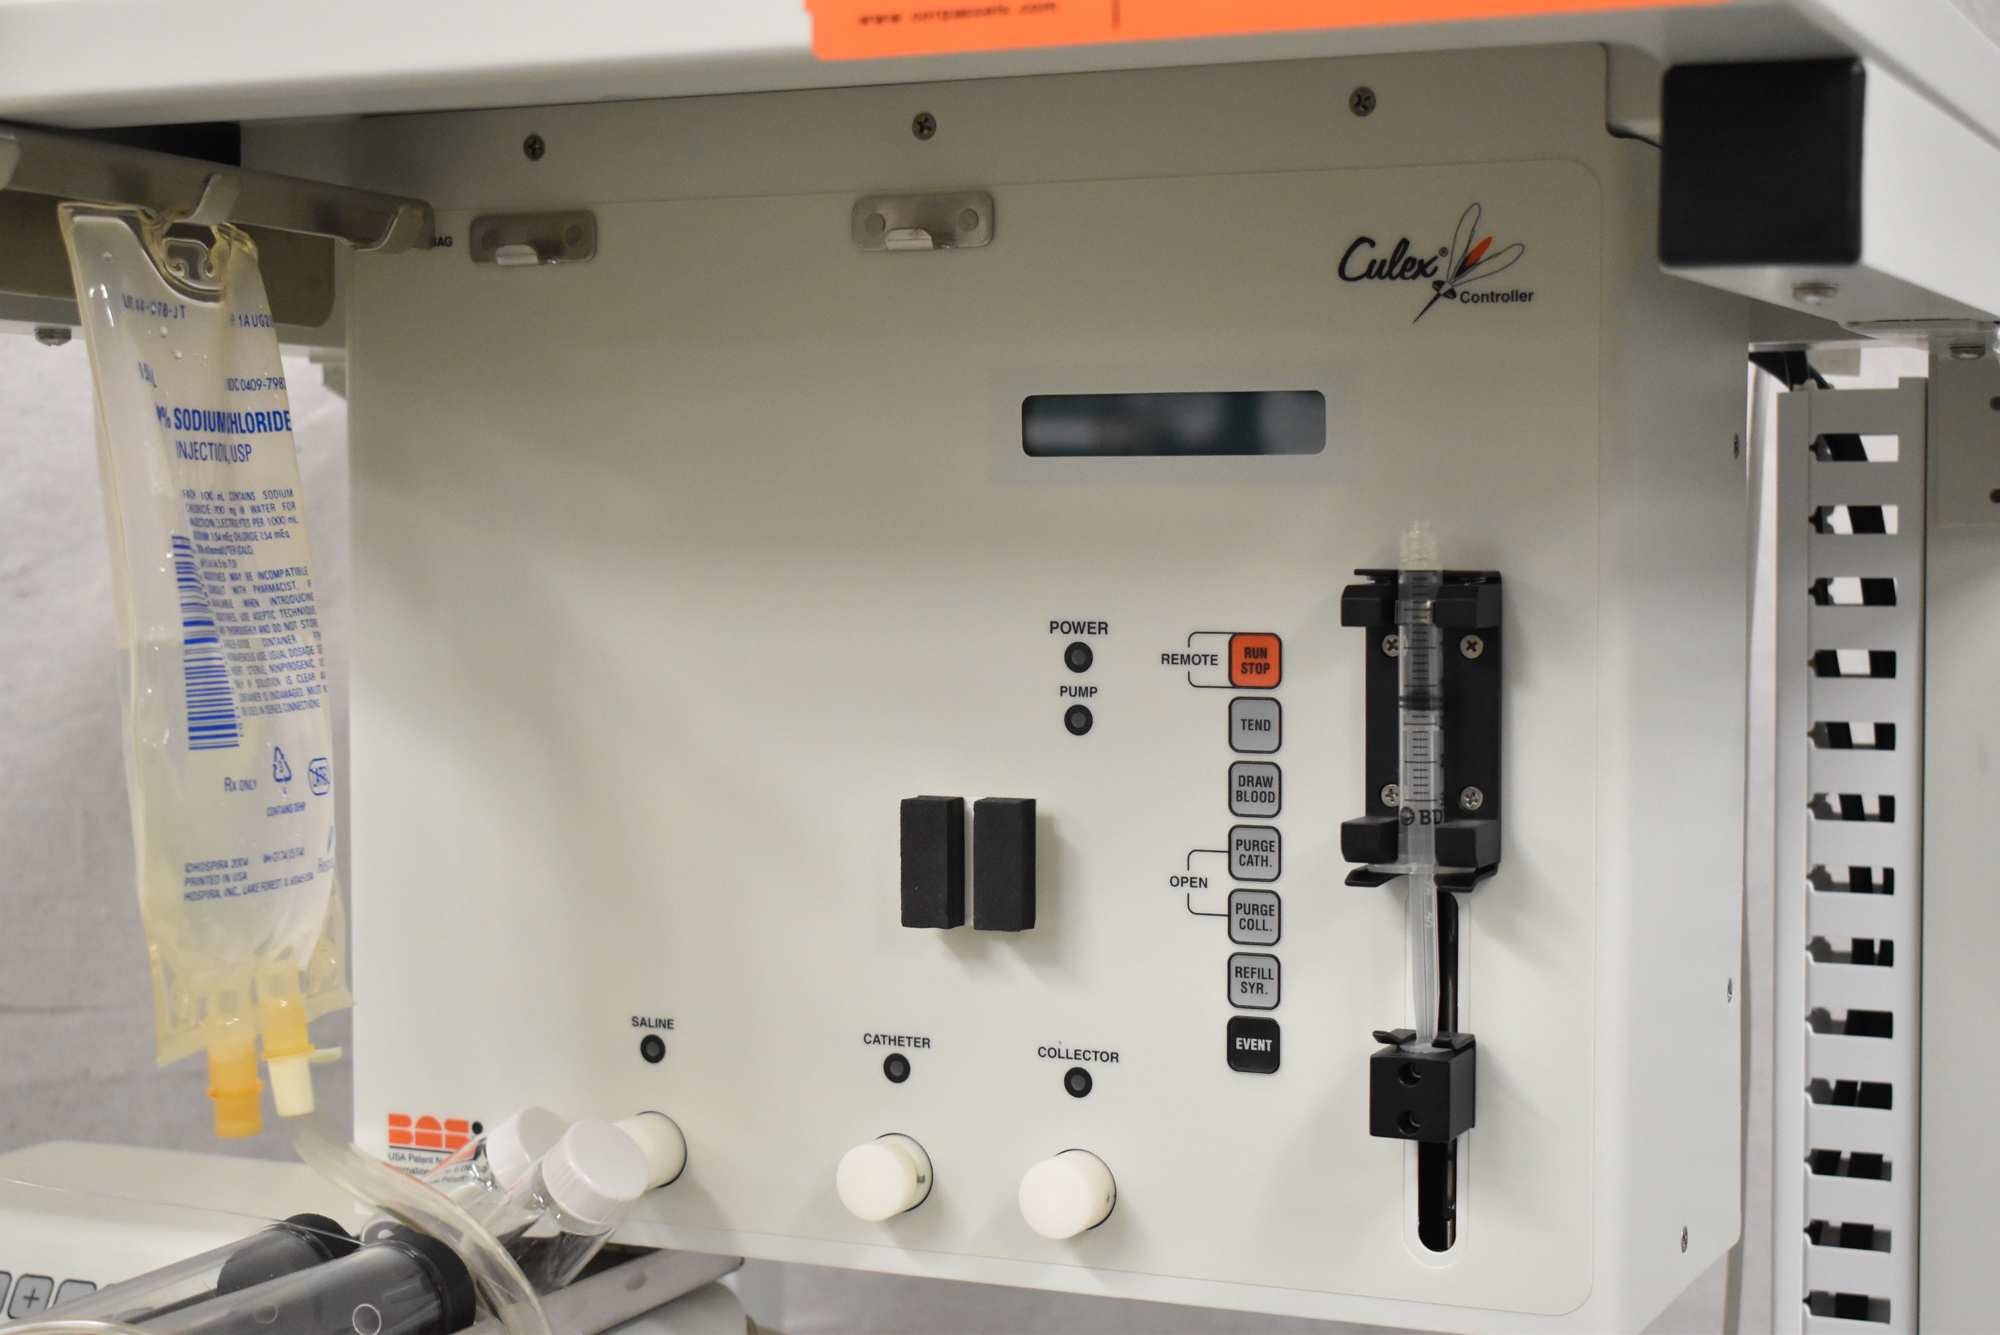 CULEX MICRO-DIALYSIS SYSTEM CONSISTING OF CULEX EMPIS PROGRAMMABLE INFUSION SYSTEM, CULEX HONEY COMB - Image 2 of 6